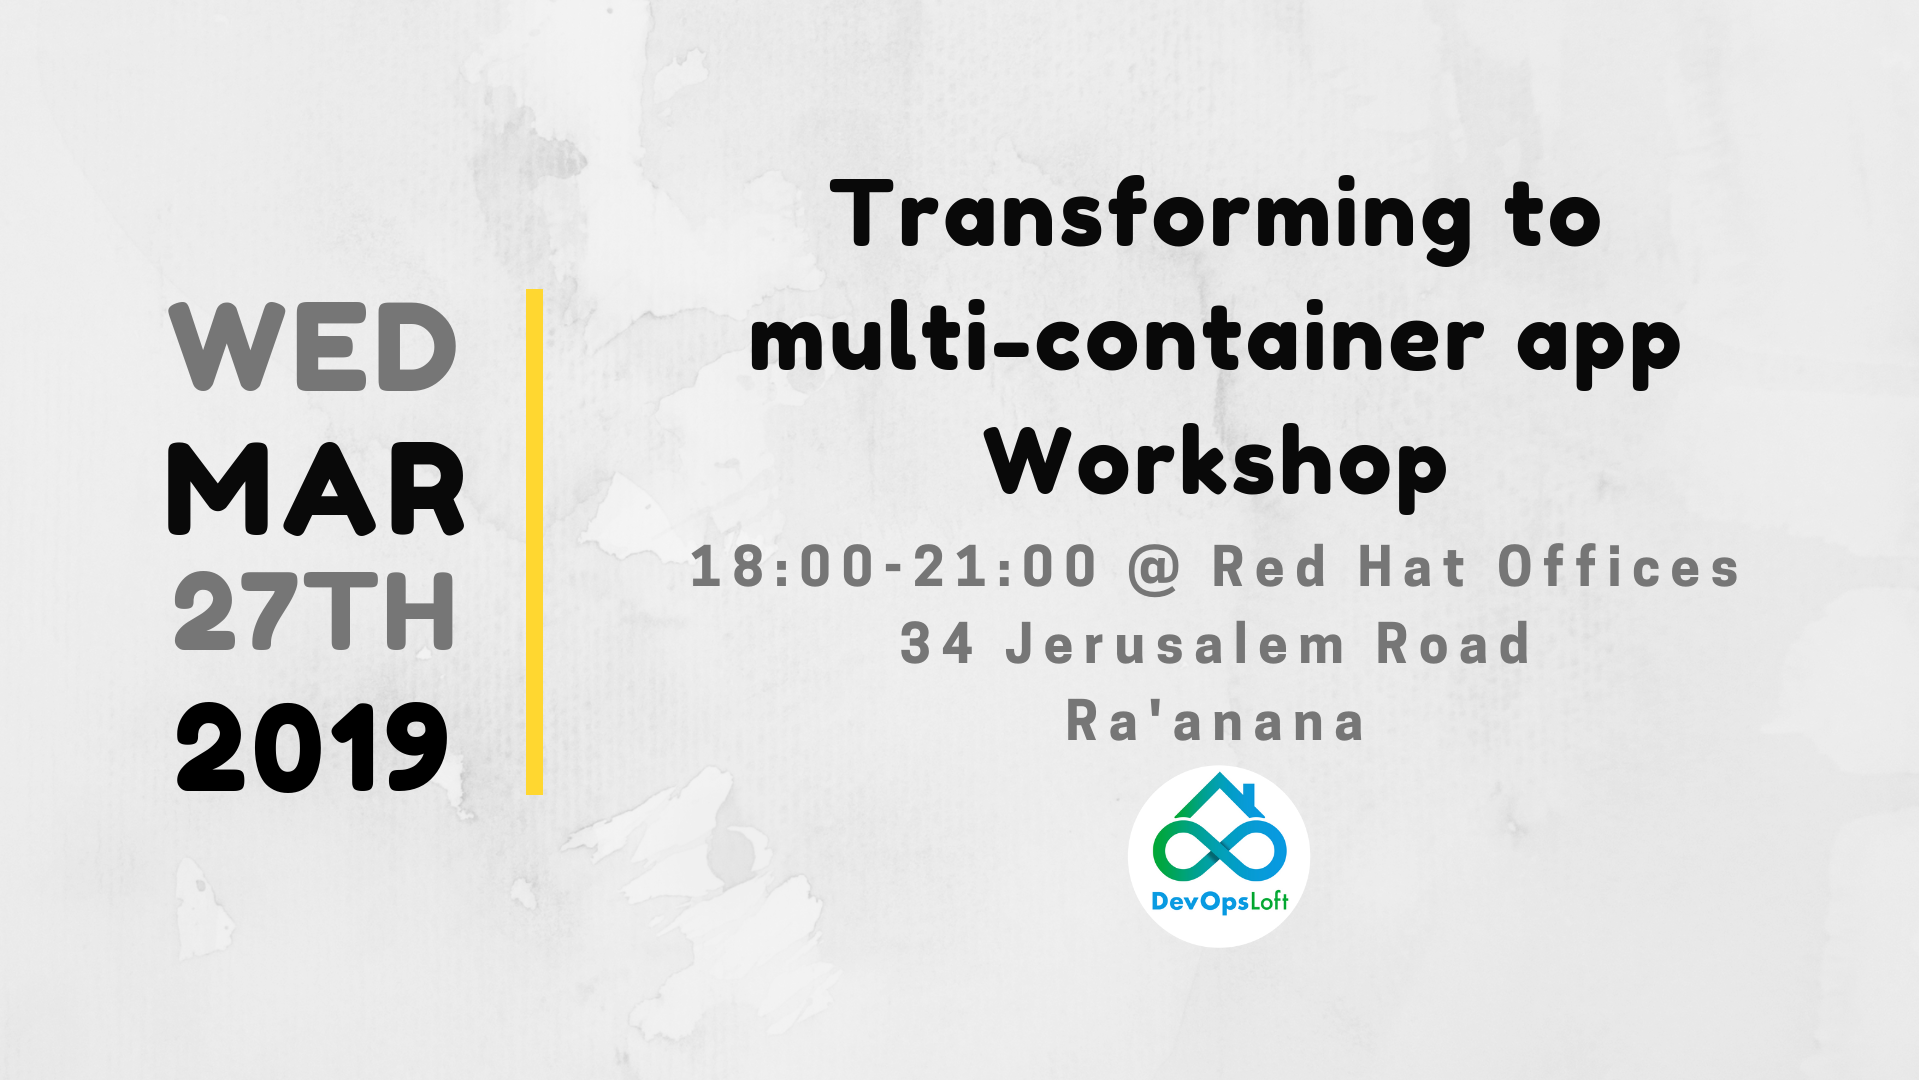 Transforming to multi-container app Workshop